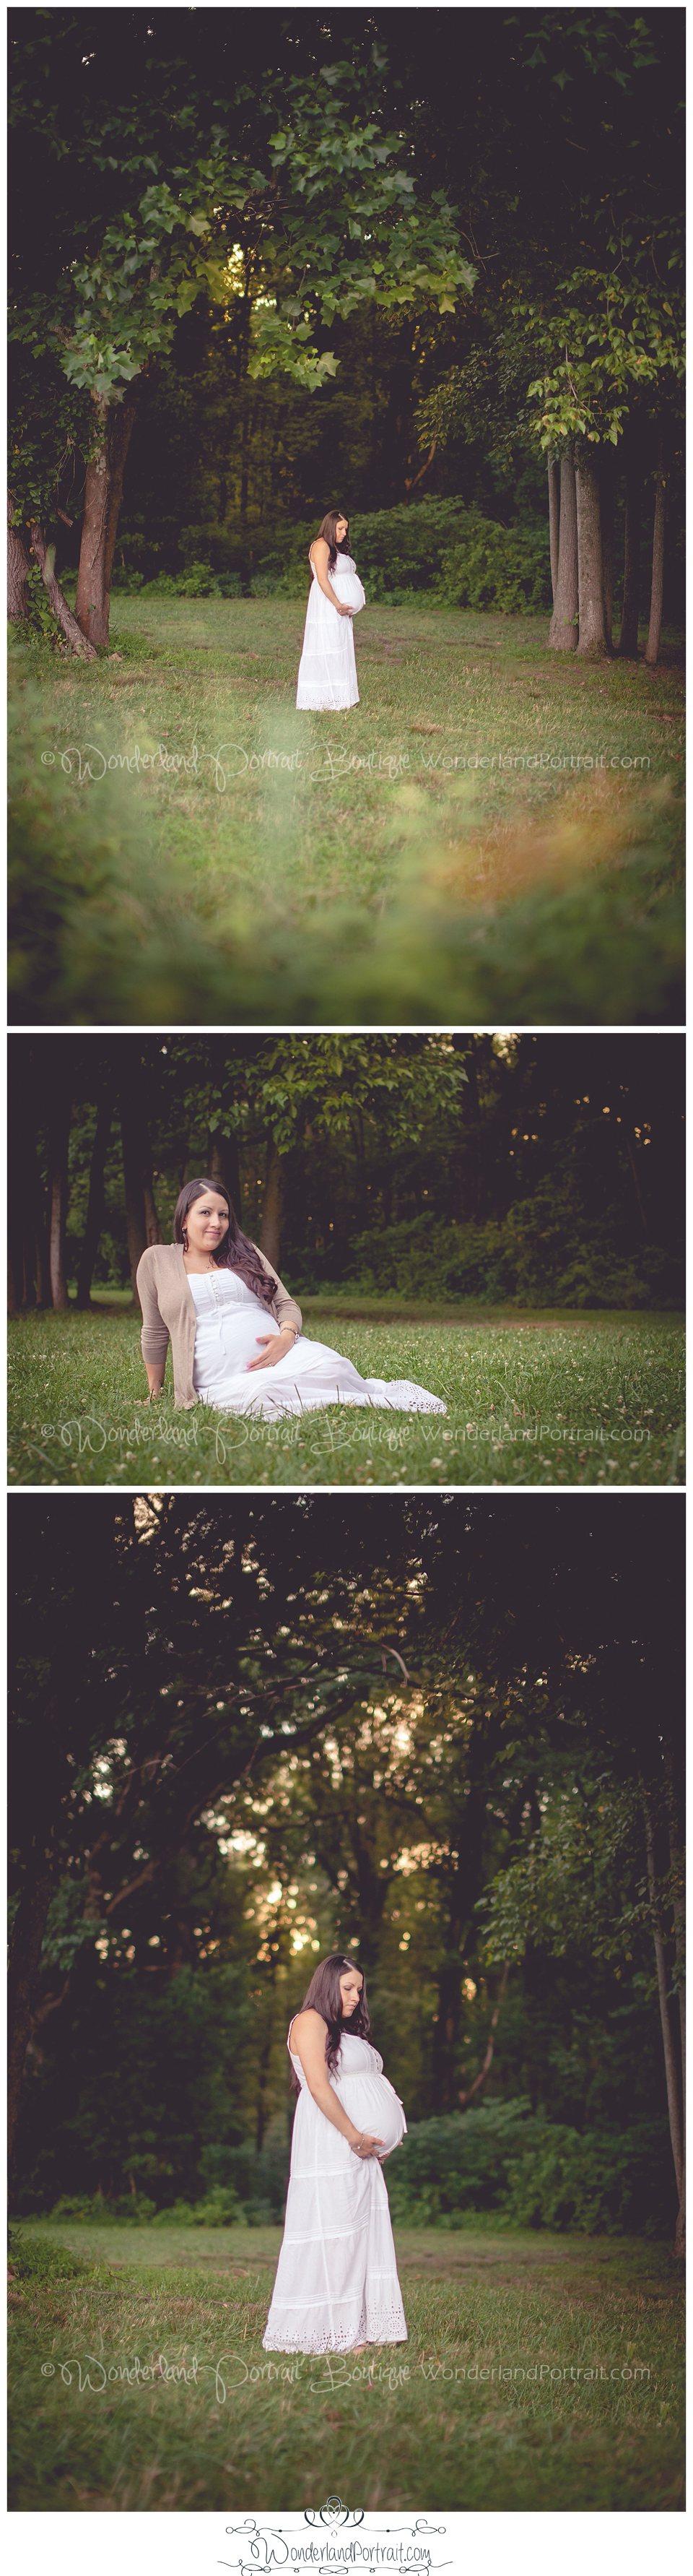 Bucks County PA Newborn & Maternity Photographer WonderlandPortrait.com